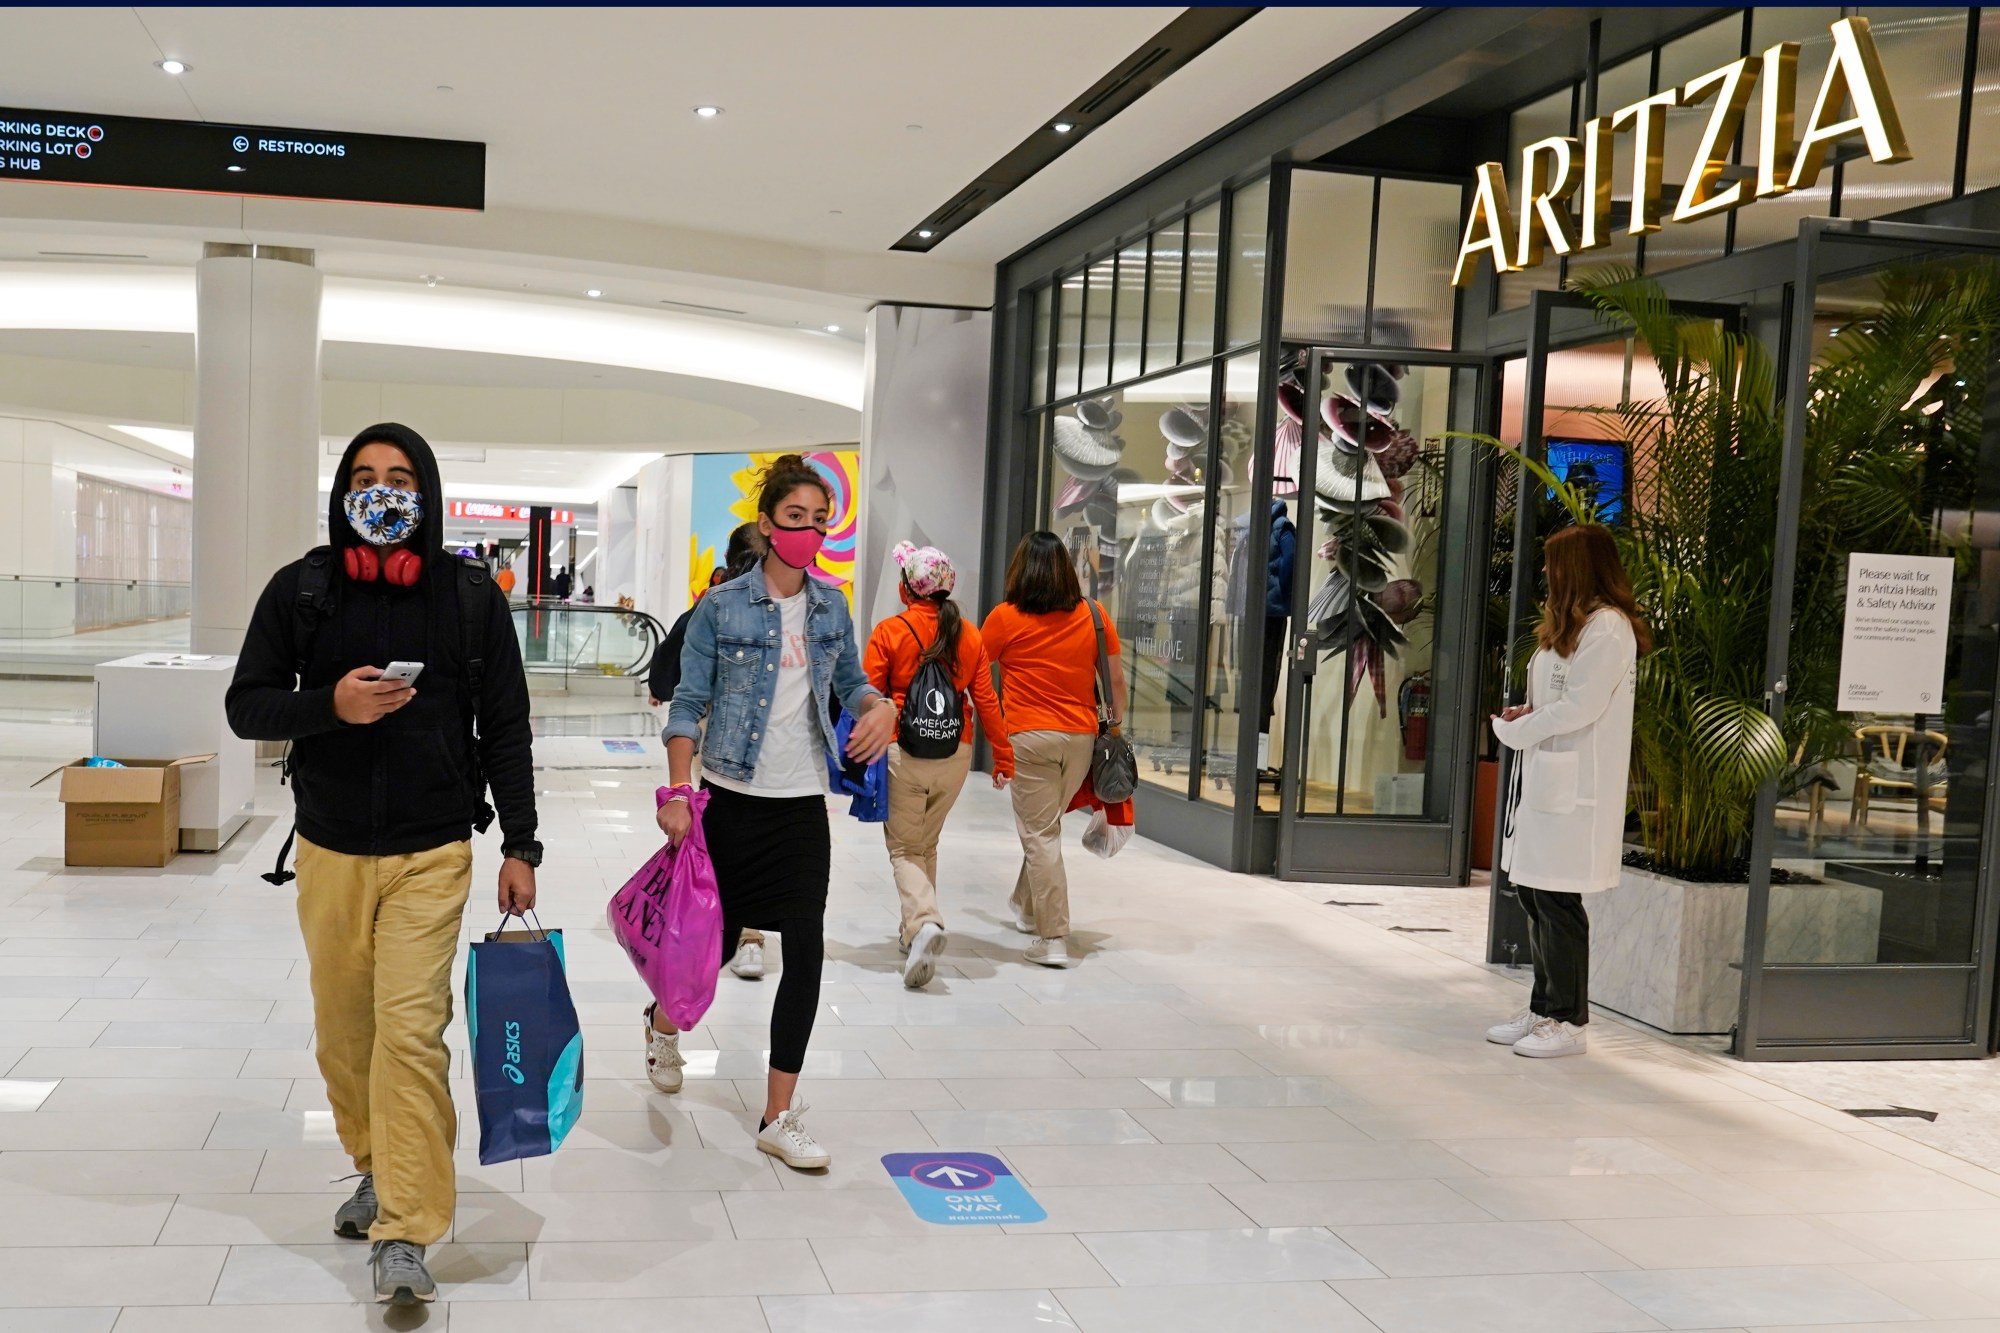 people wearing masks to protect against covid walk in New Jersey mall